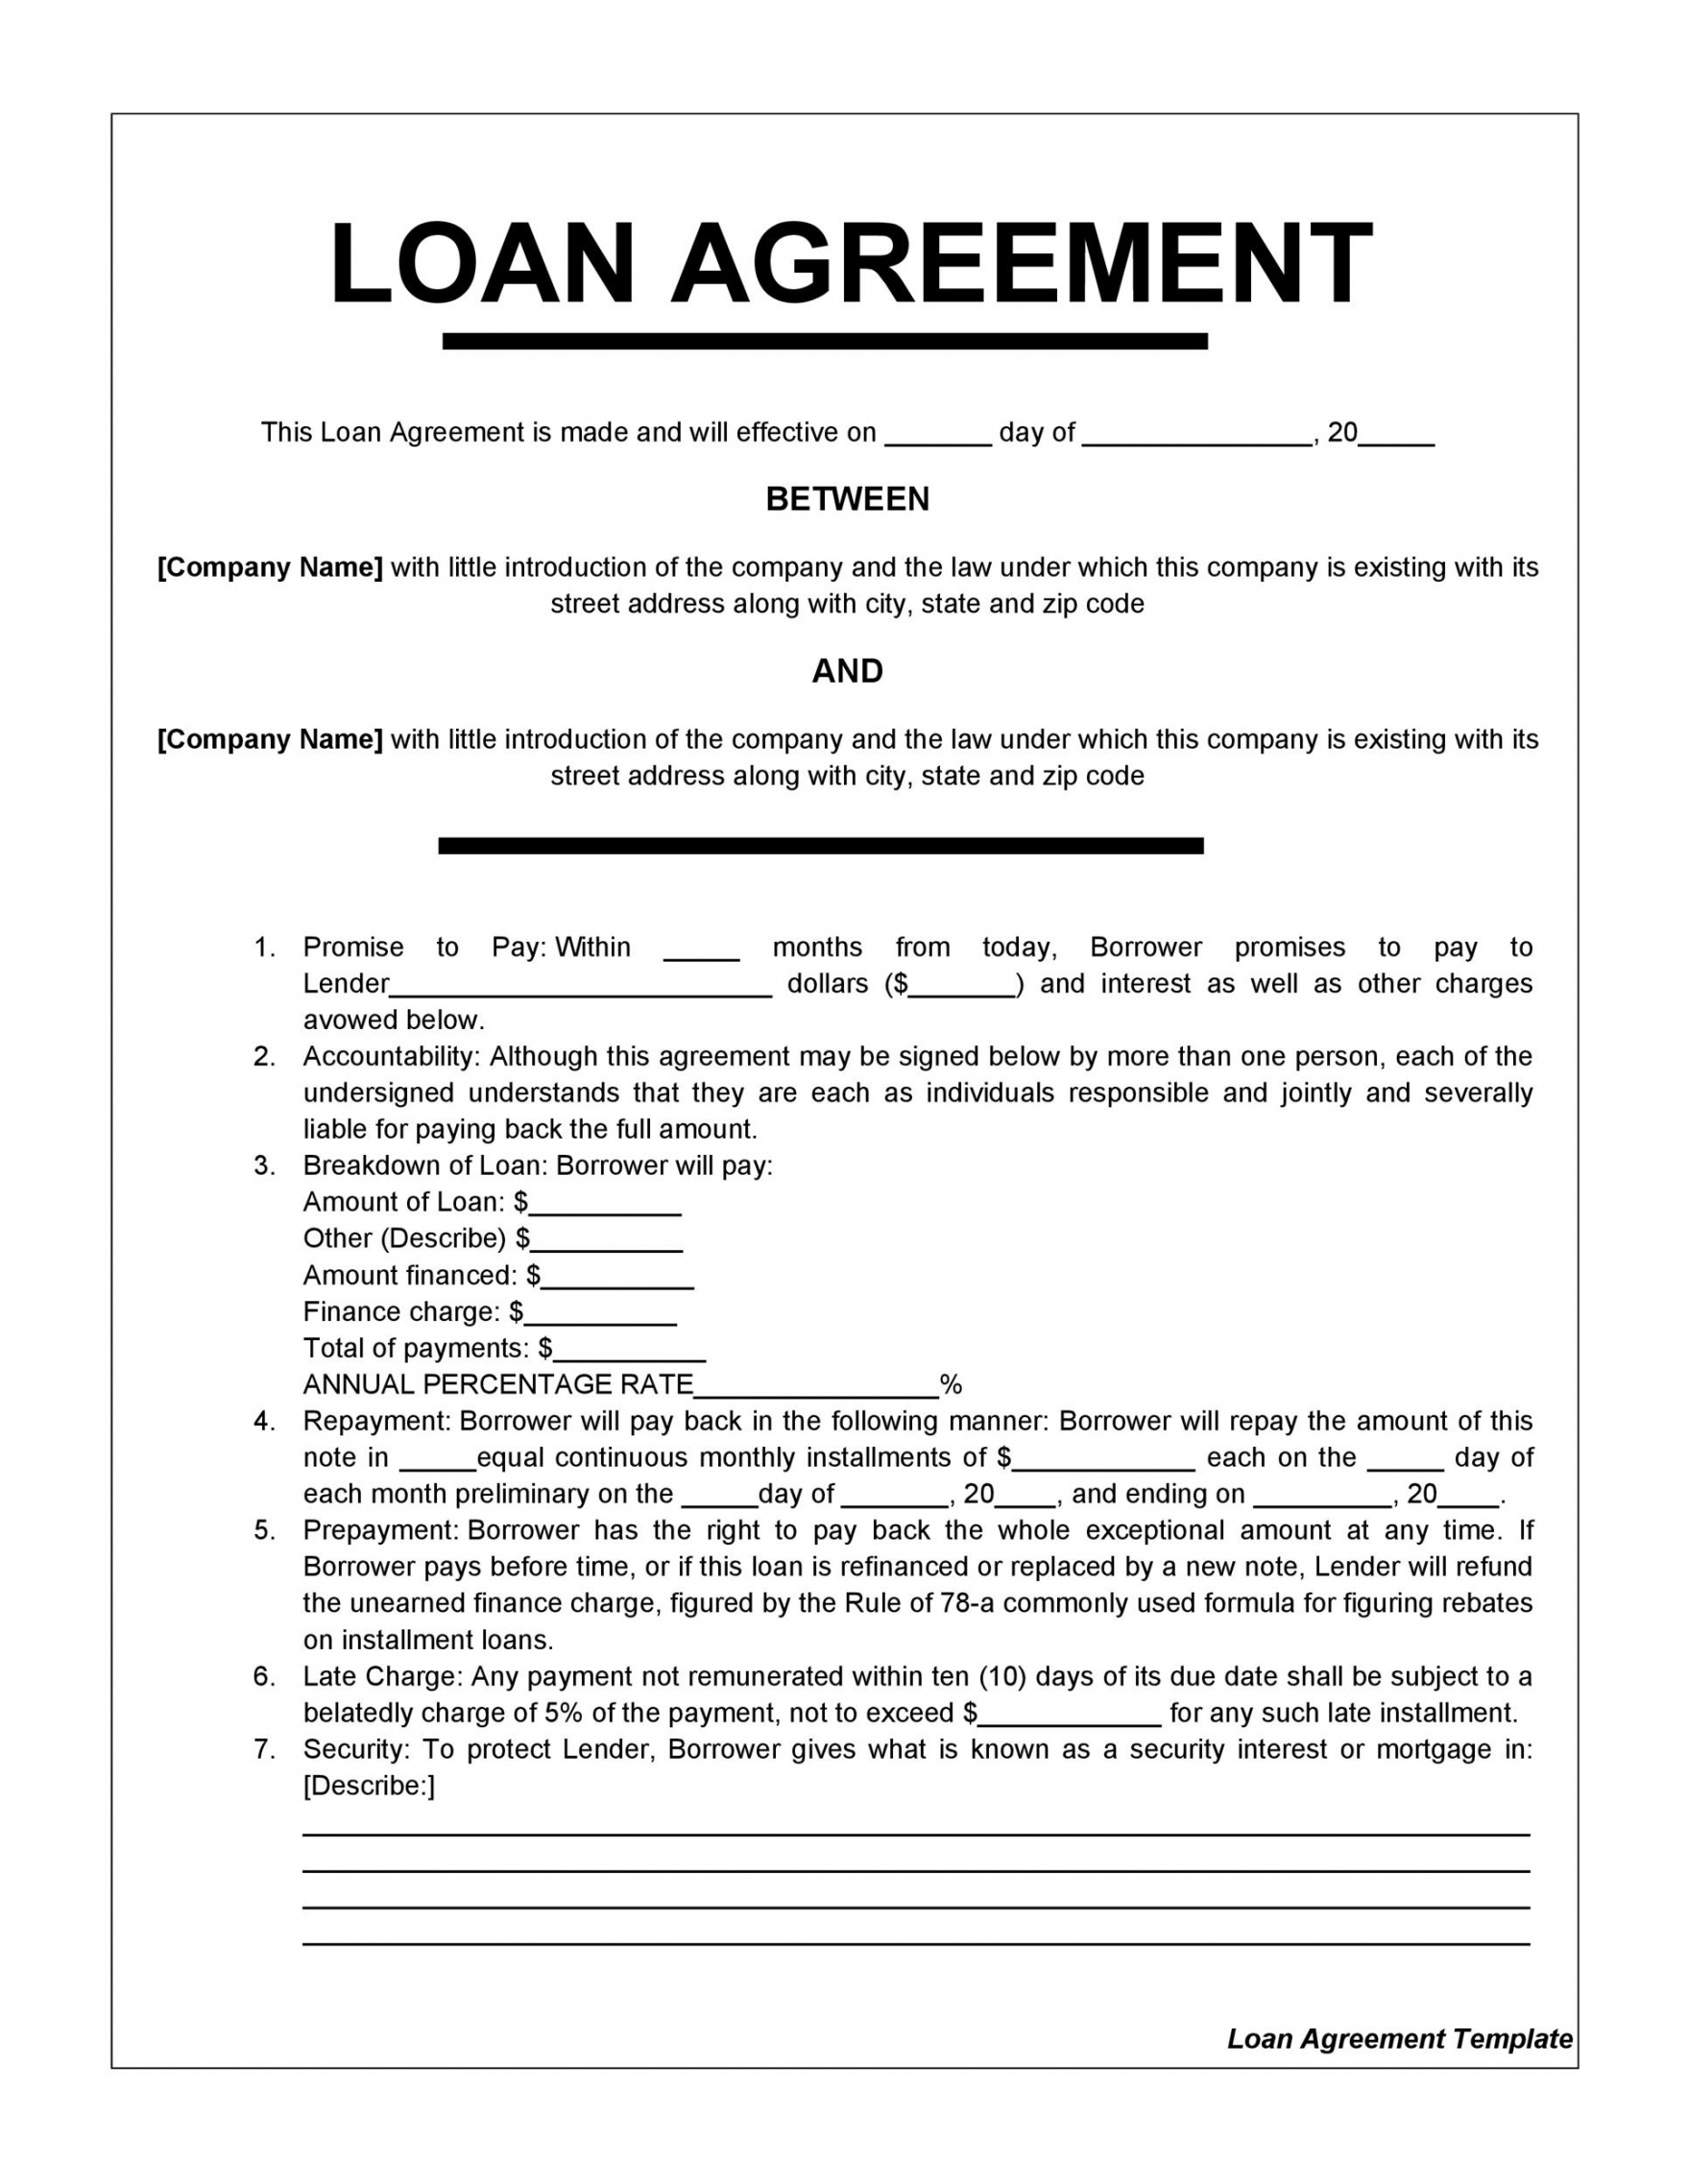 editable 40 free loan agreement templates word & pdf ᐅ templatelab demand loan agreement template excel